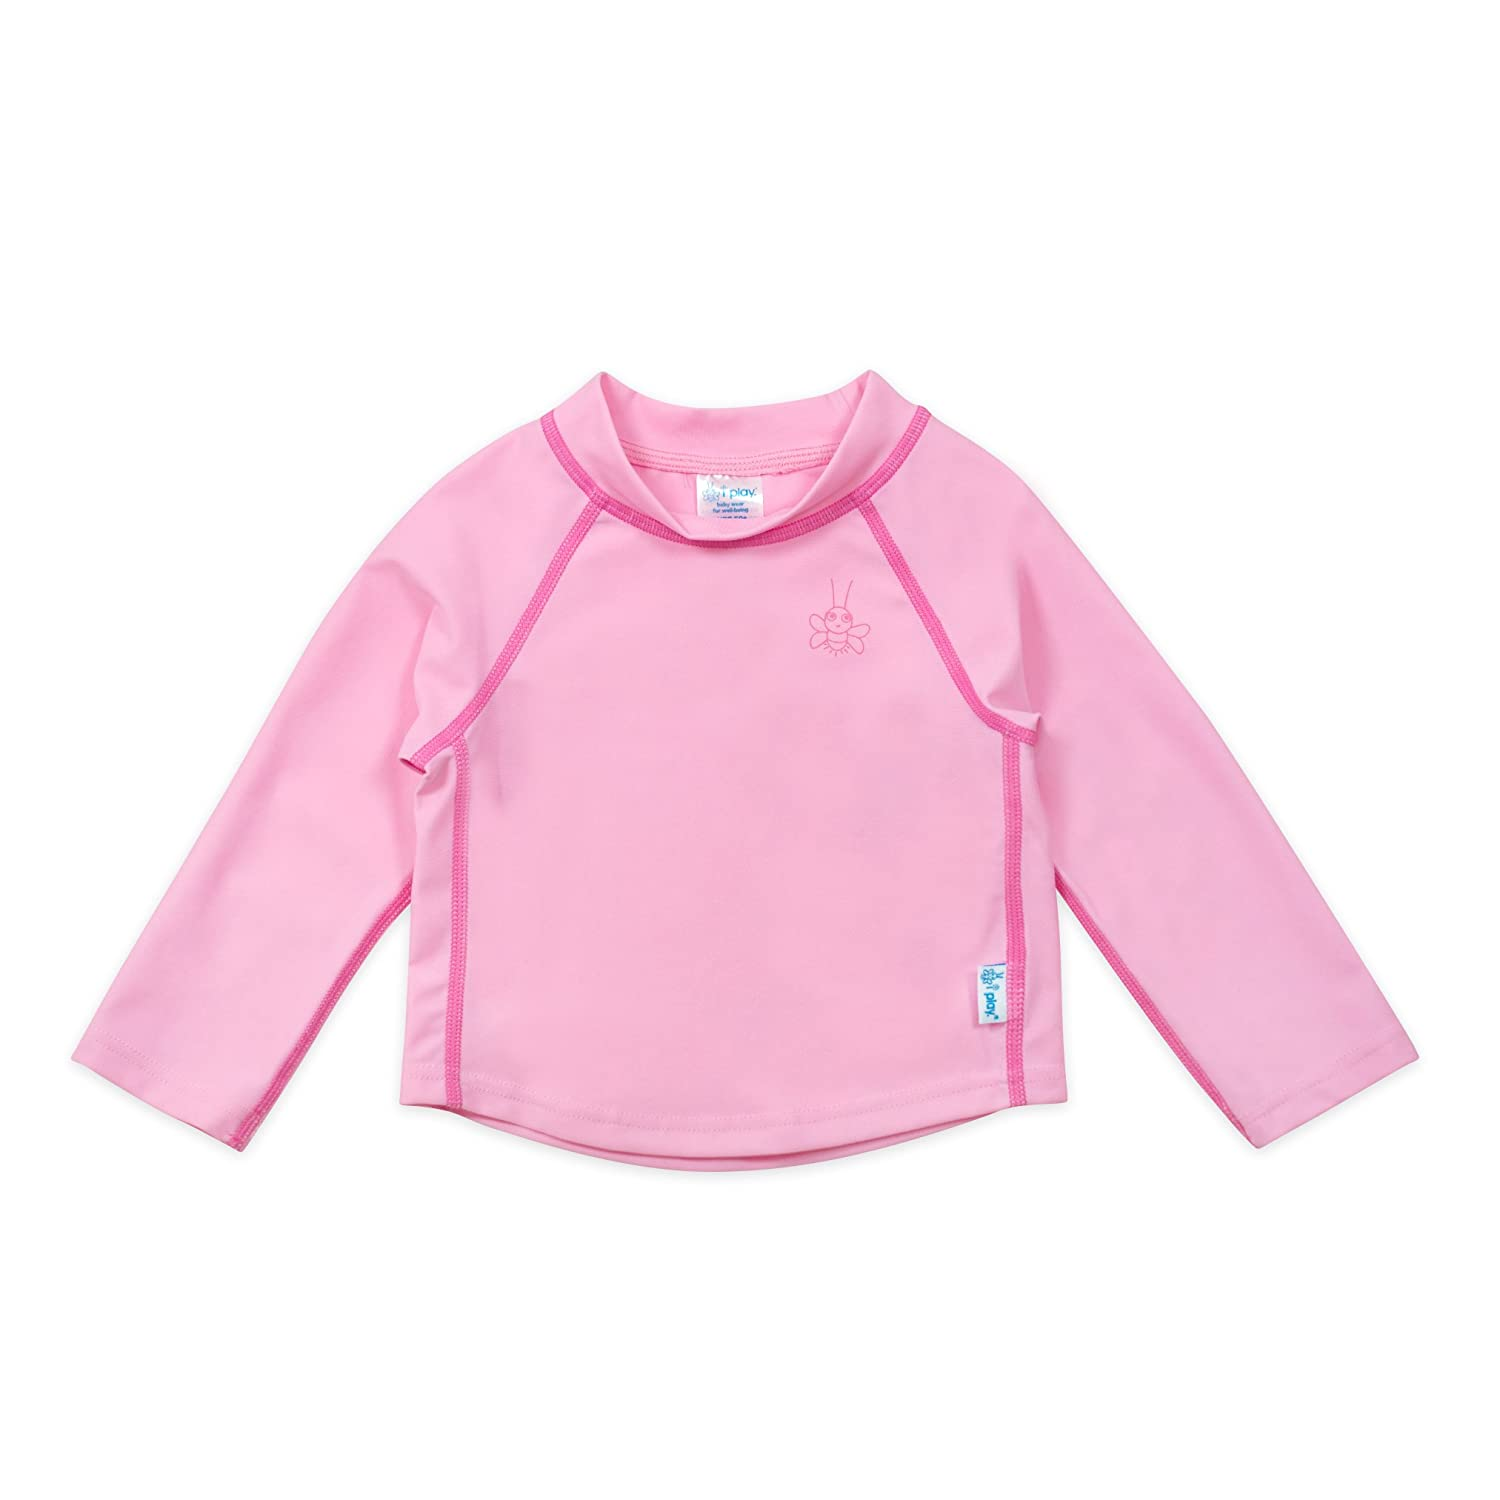 I-Play. Baby Long Sleeve Rashguard Shirt, Light Pink, 12 Months 770100